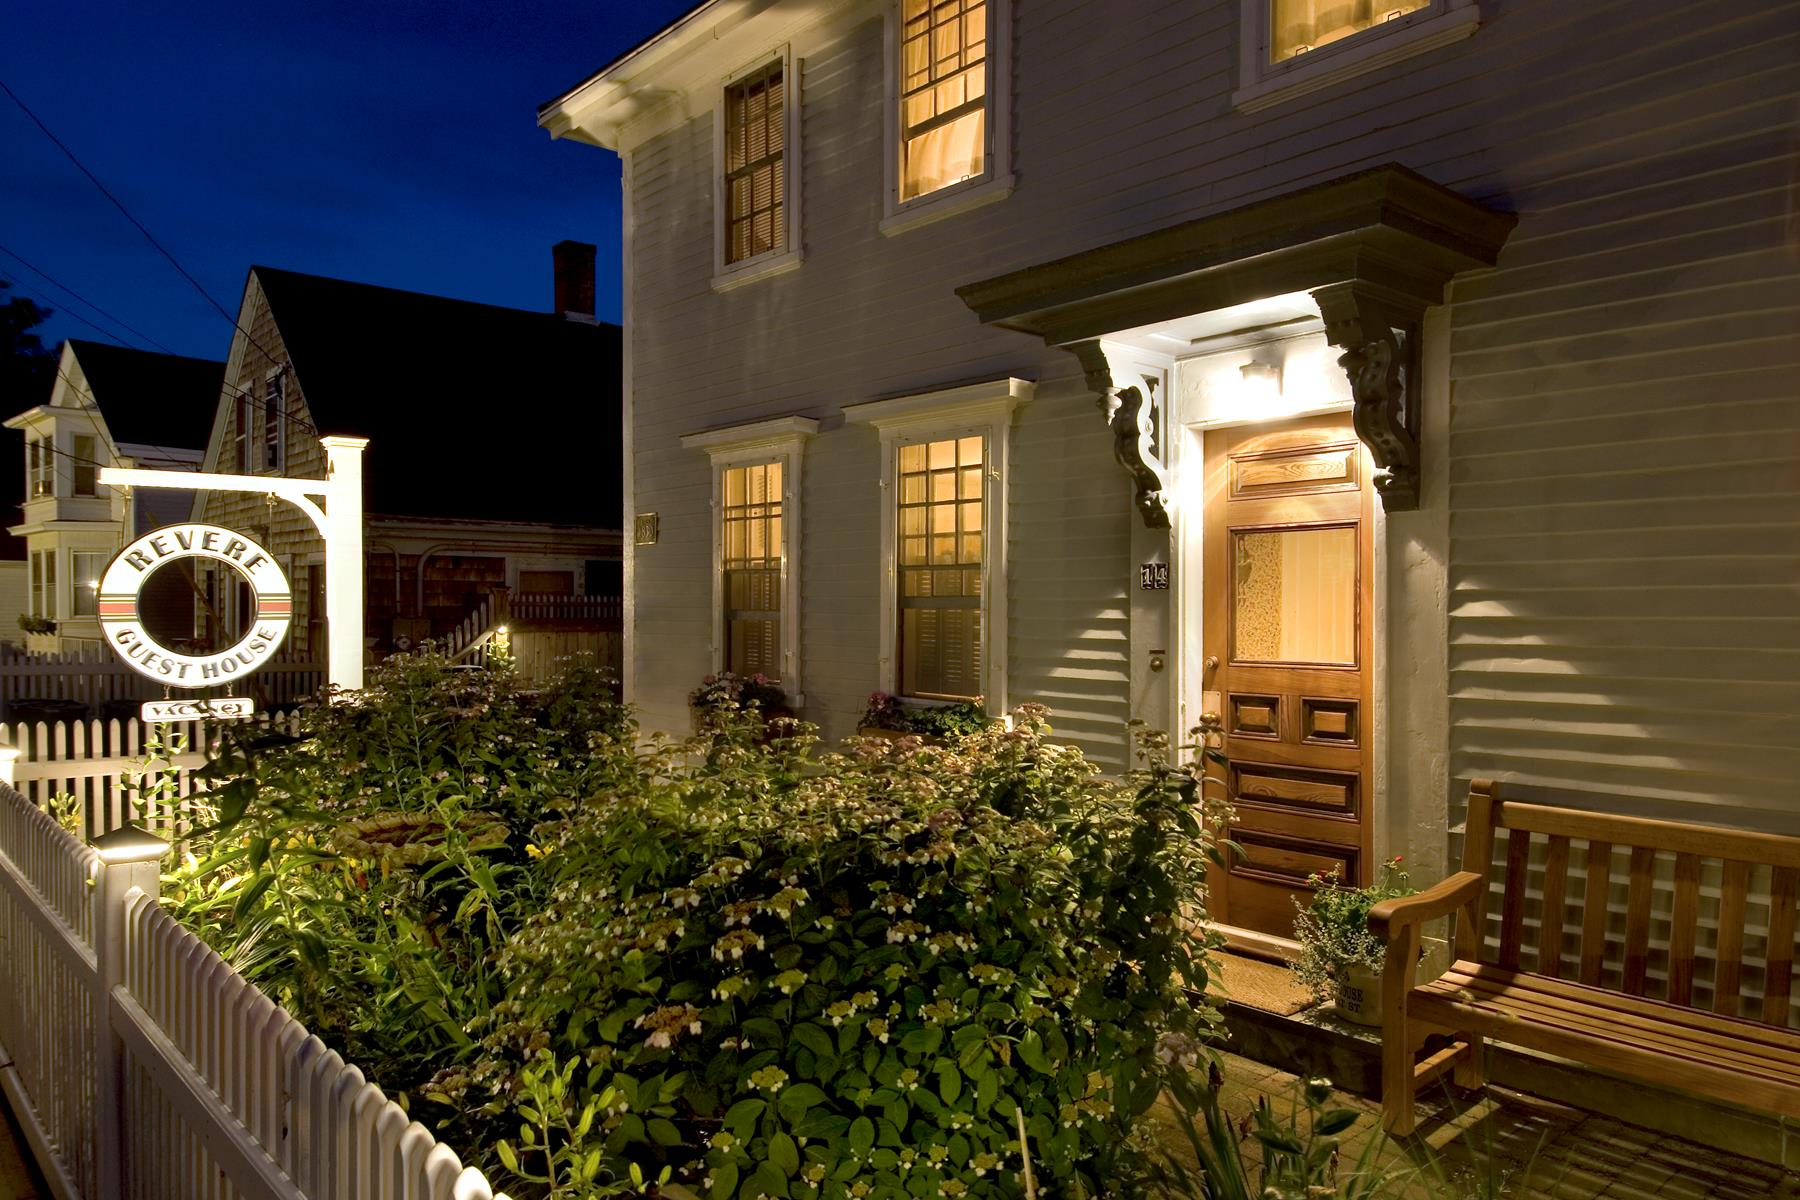 Property For Sale at The Revere House